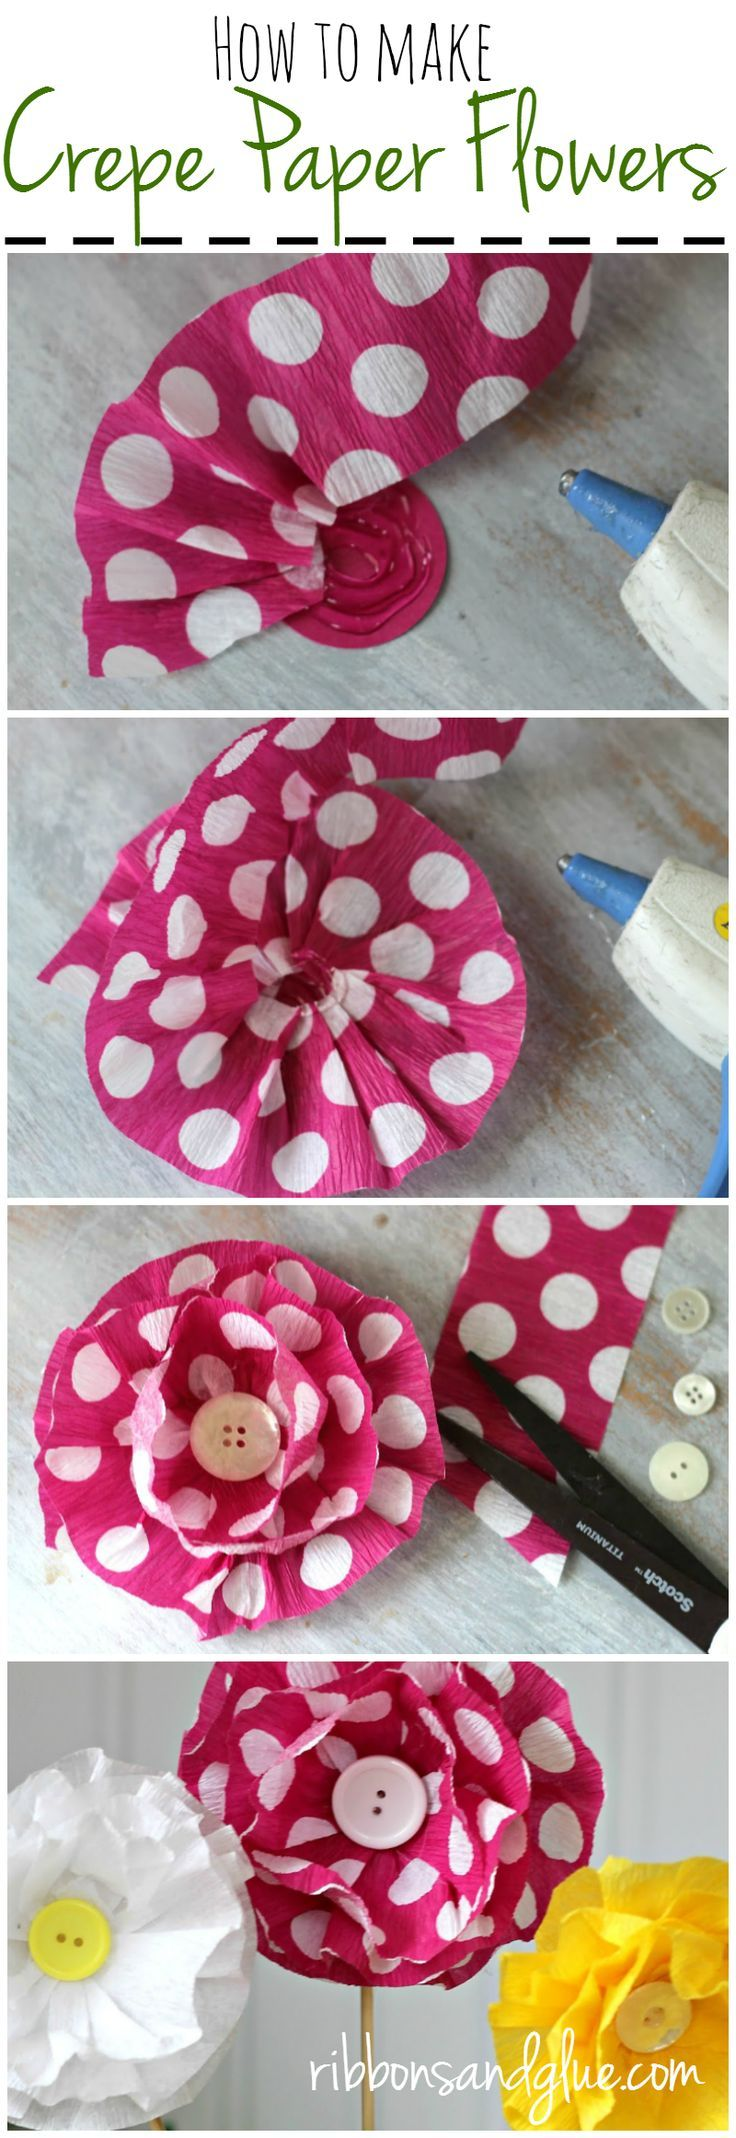 How To Make Crepe Paper Flowers Crepe Paper Flowers Crepe Paper